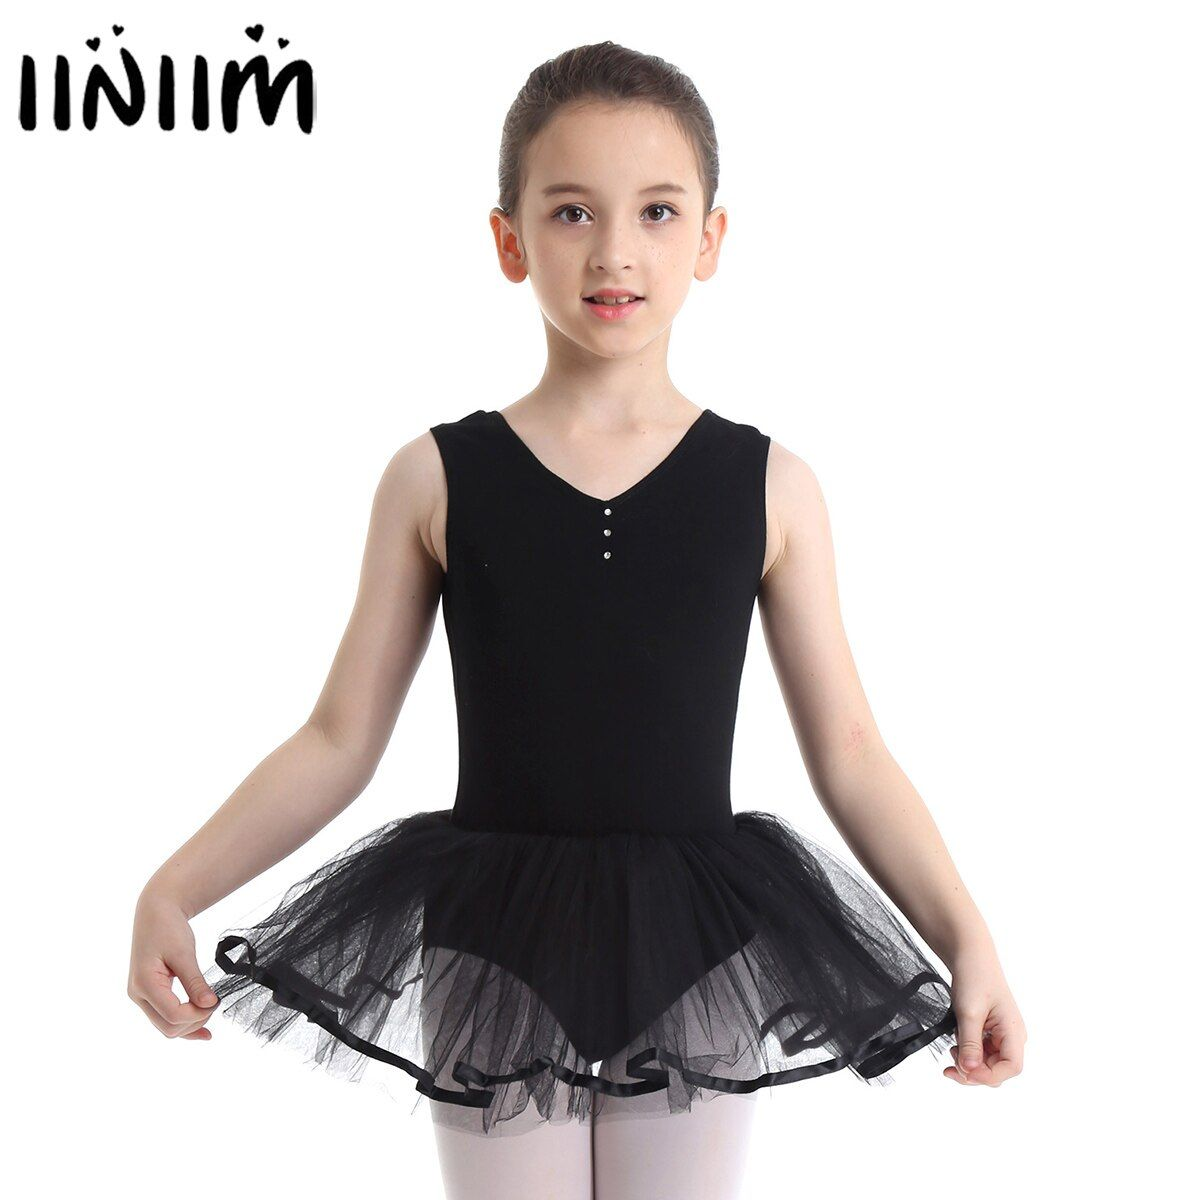 Tutu Skirt Kid Girls Lyrical Dance Dress Costumes Leotard Ballet Dancing Outfit